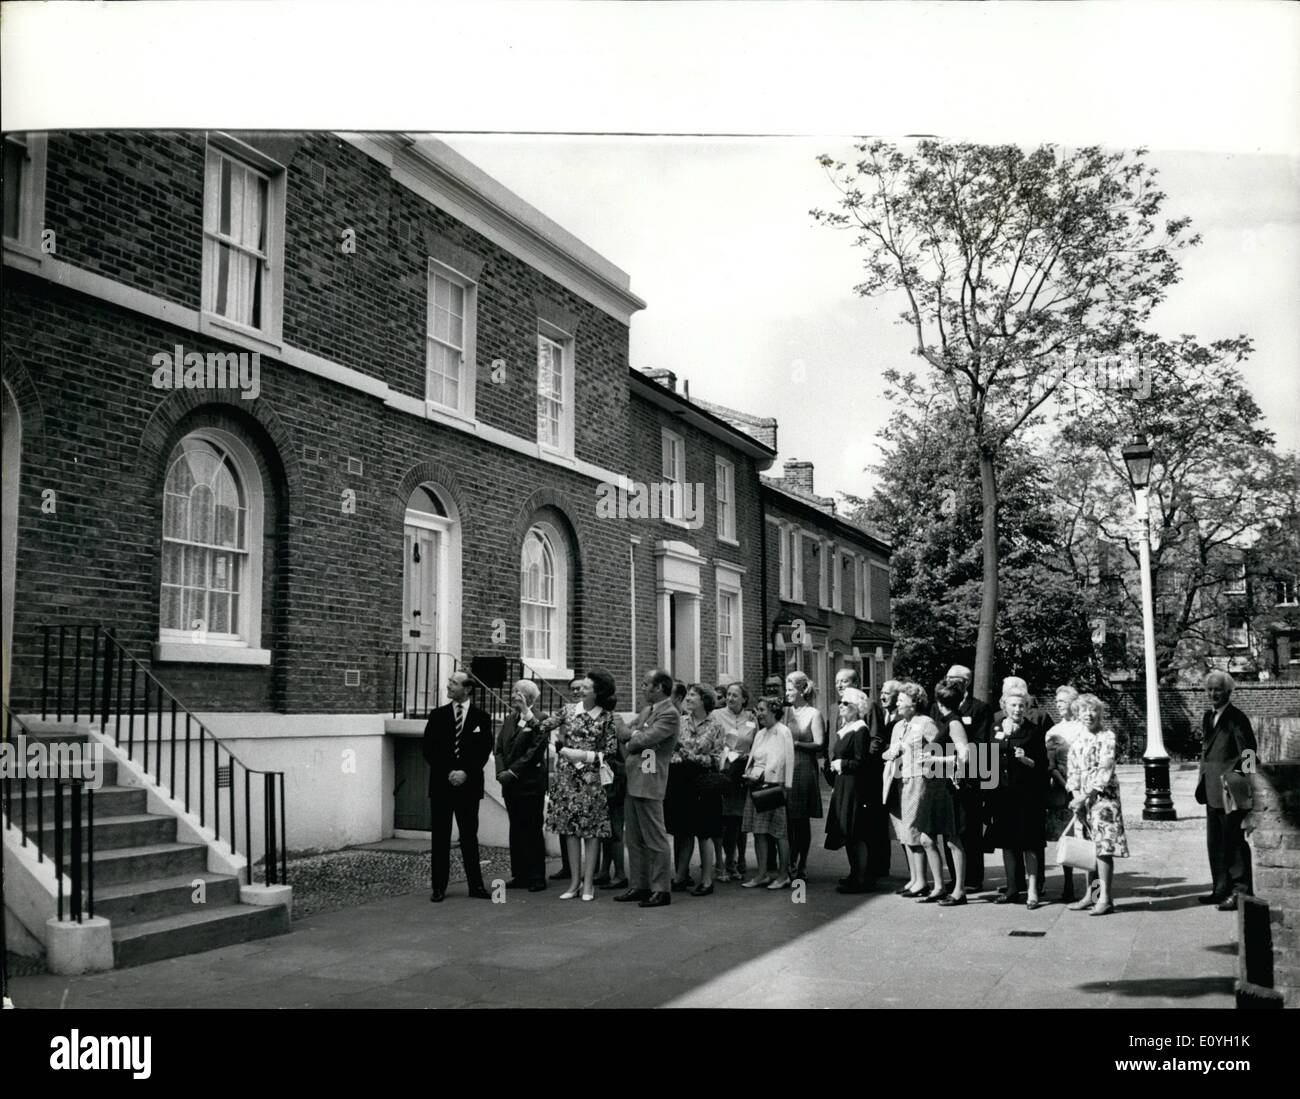 May 05, 1970 - Americans See GLC Rehabilitation Scheme. A party of Americans from the National Trust for Historic Preservation in the U.S.A. visited a prize-winning Greater London Council rehabilitation scheme during a whistle-stop tour of buildings of architectural interest. The scheme at Portland Grove, Lambeth, in which ten early 19th century houses were rehabilitated (refurbished on the outside, modernised on the inside) received a Civic Trust Award. It is part of a large rehabilitation programme being carried out by the Council in various parts of London - Stock Image